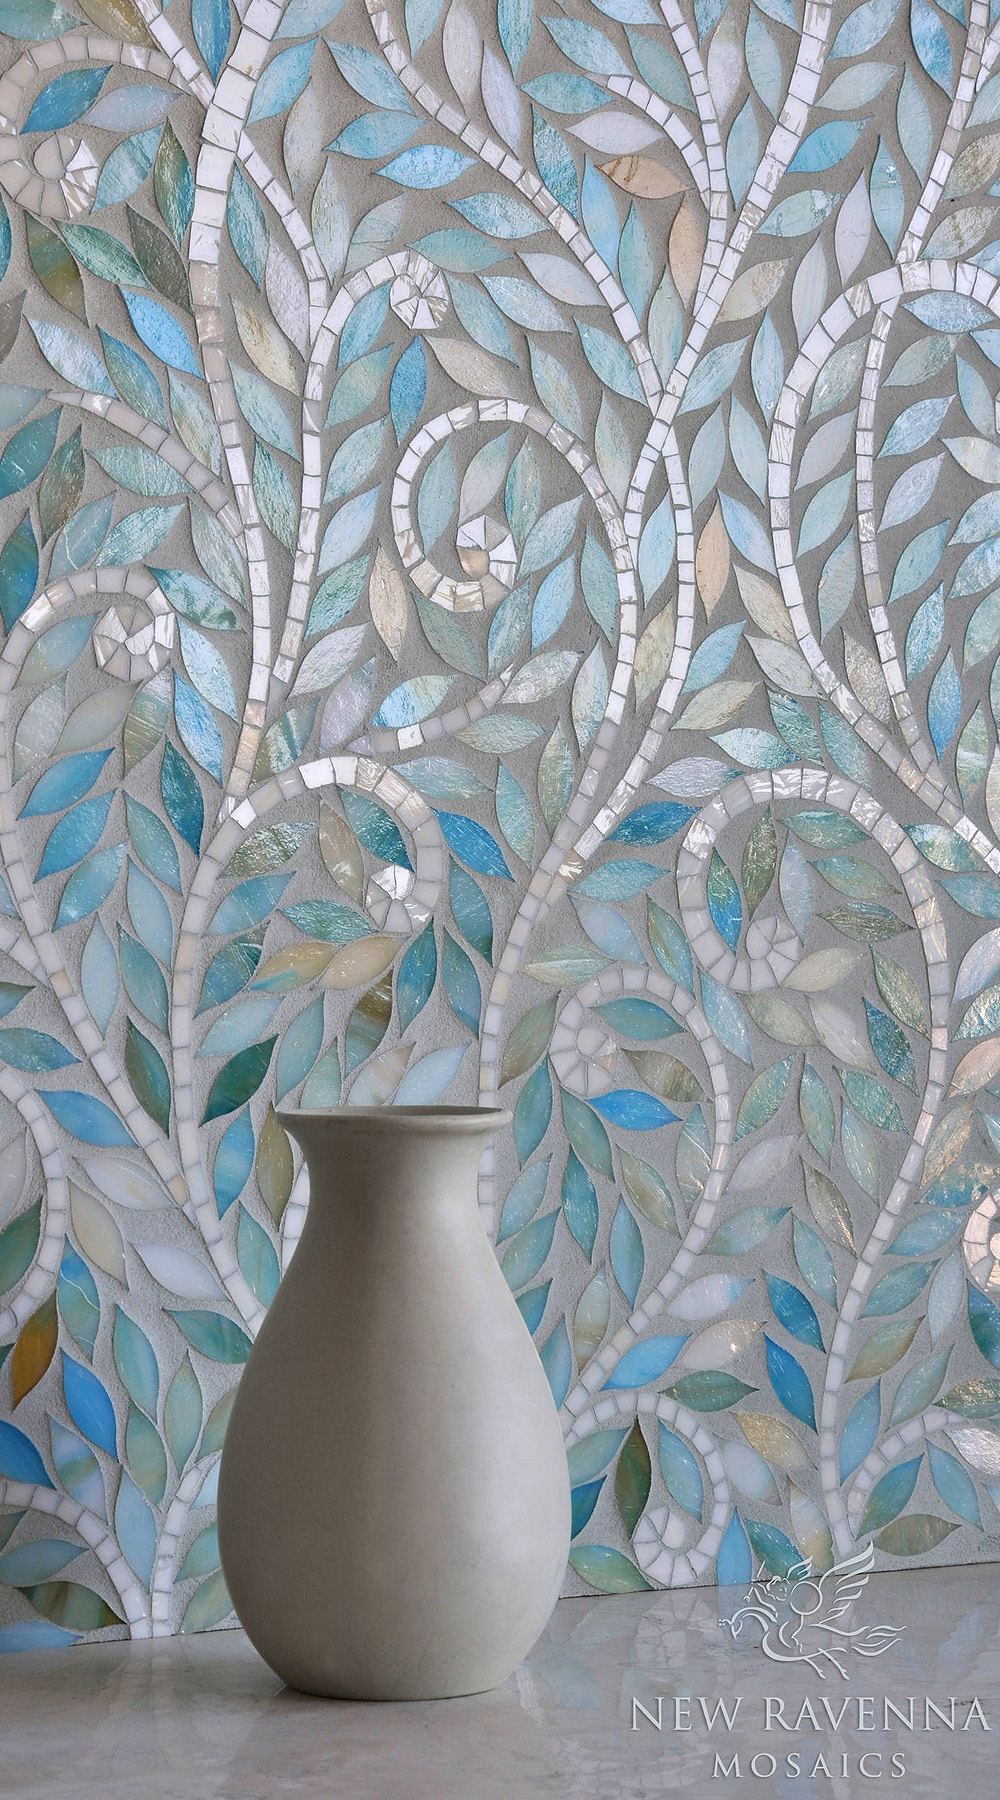 91206 mosaic contemporary blue stain